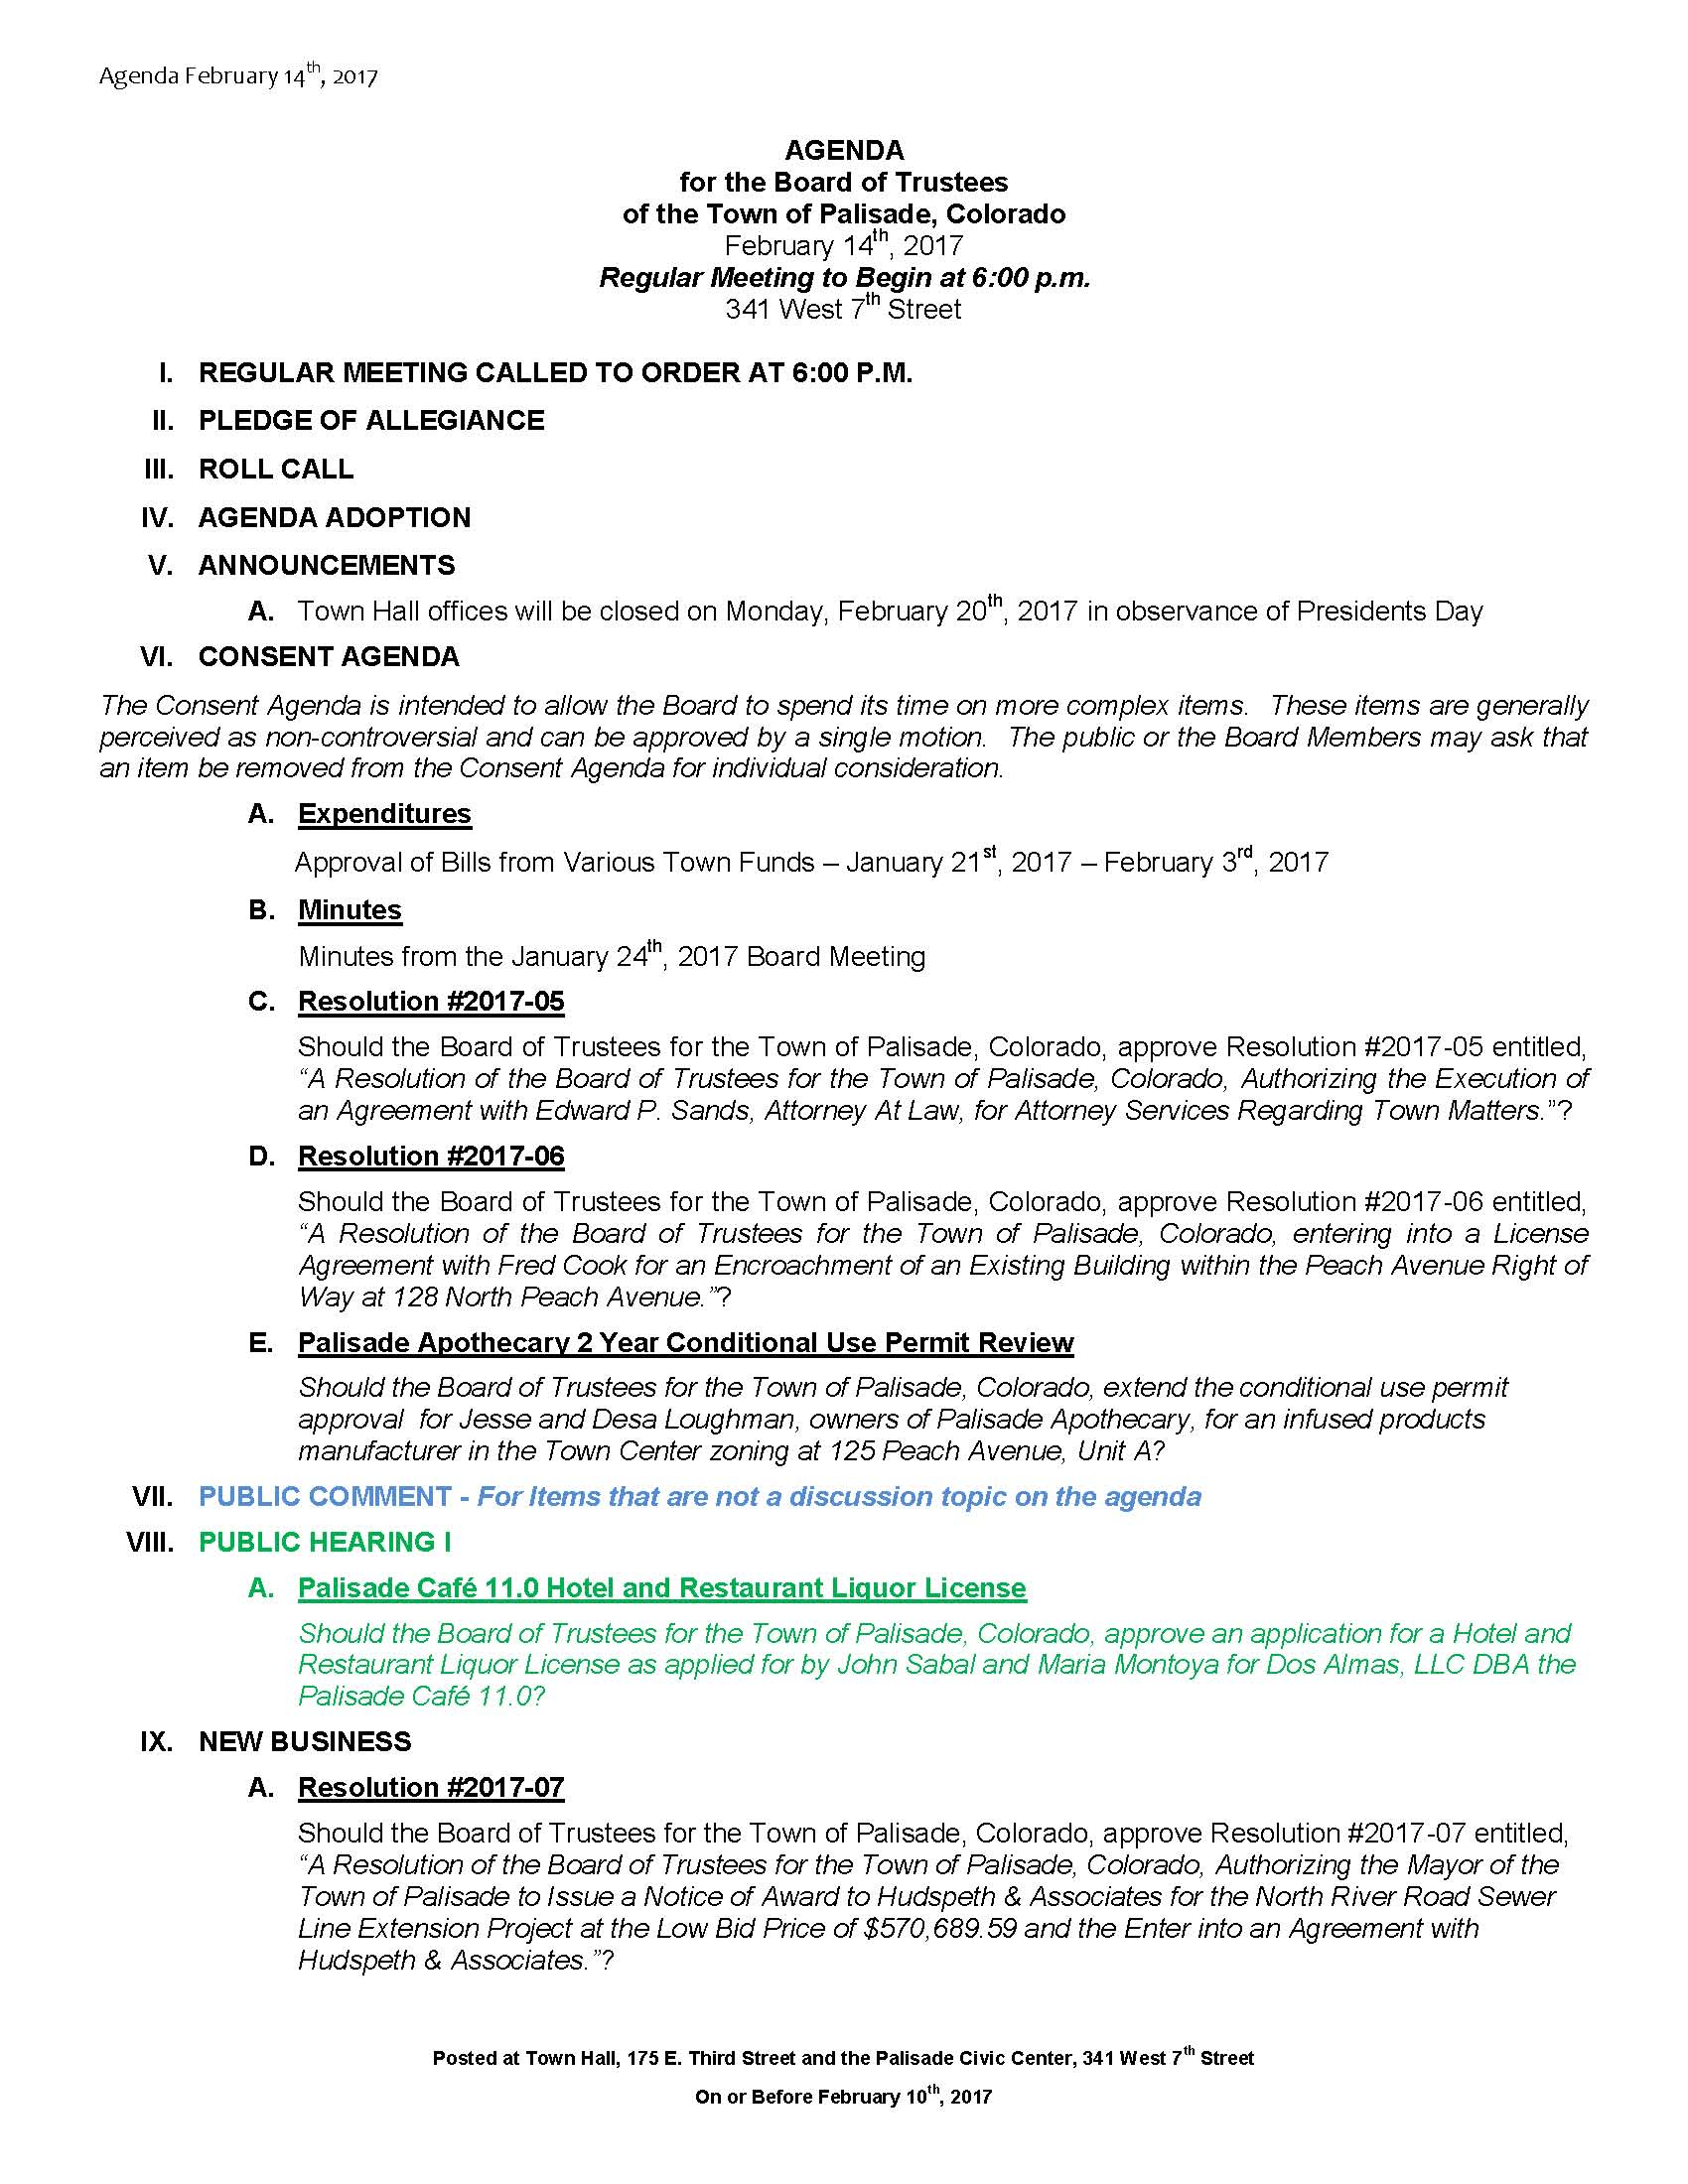 February 14th 2017 Board Meeting Agenda Page 1